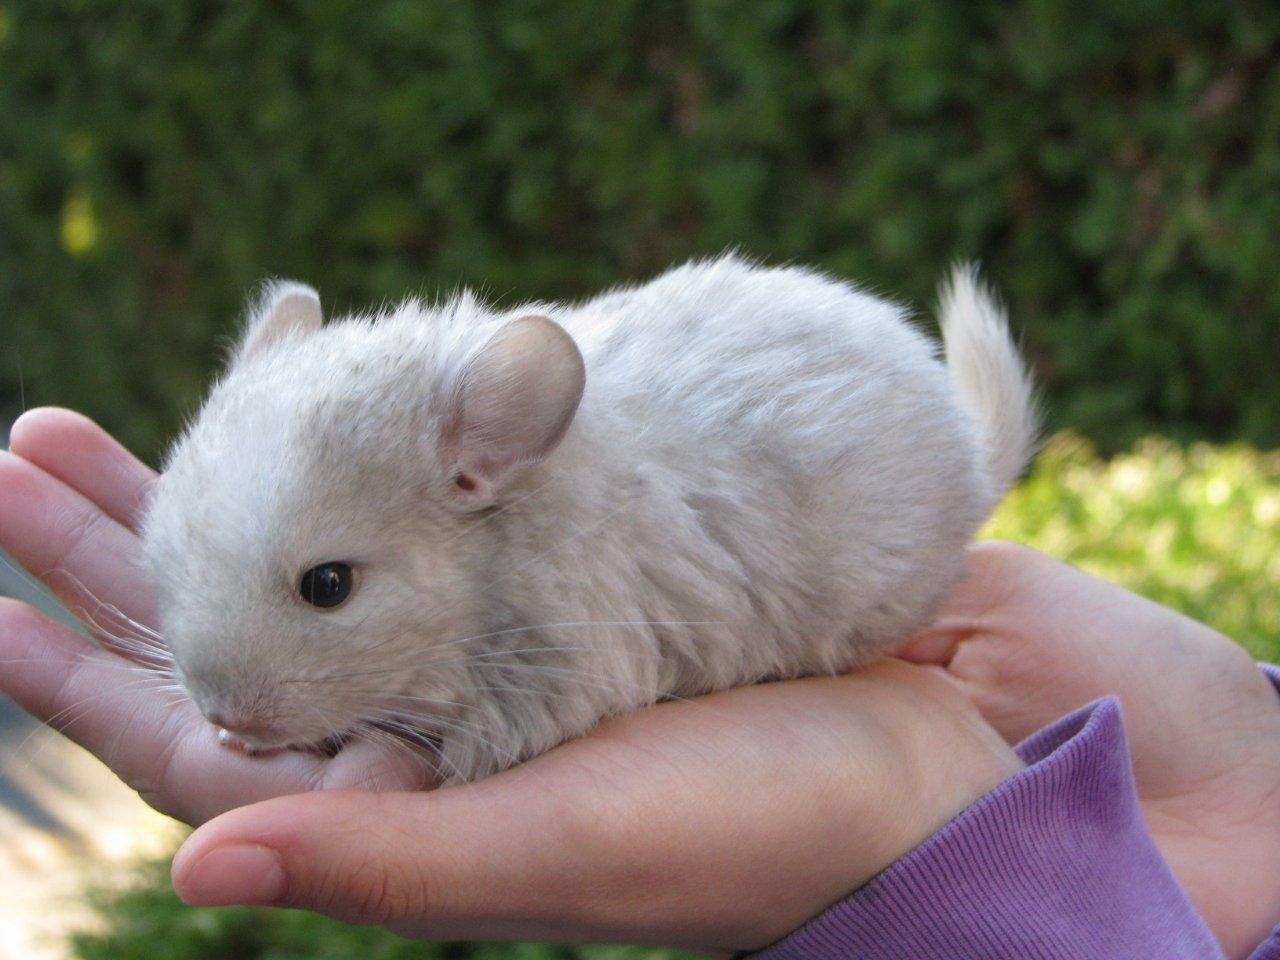 Cute animals for sale - Animal Cute Baby Chinchillas For Sale